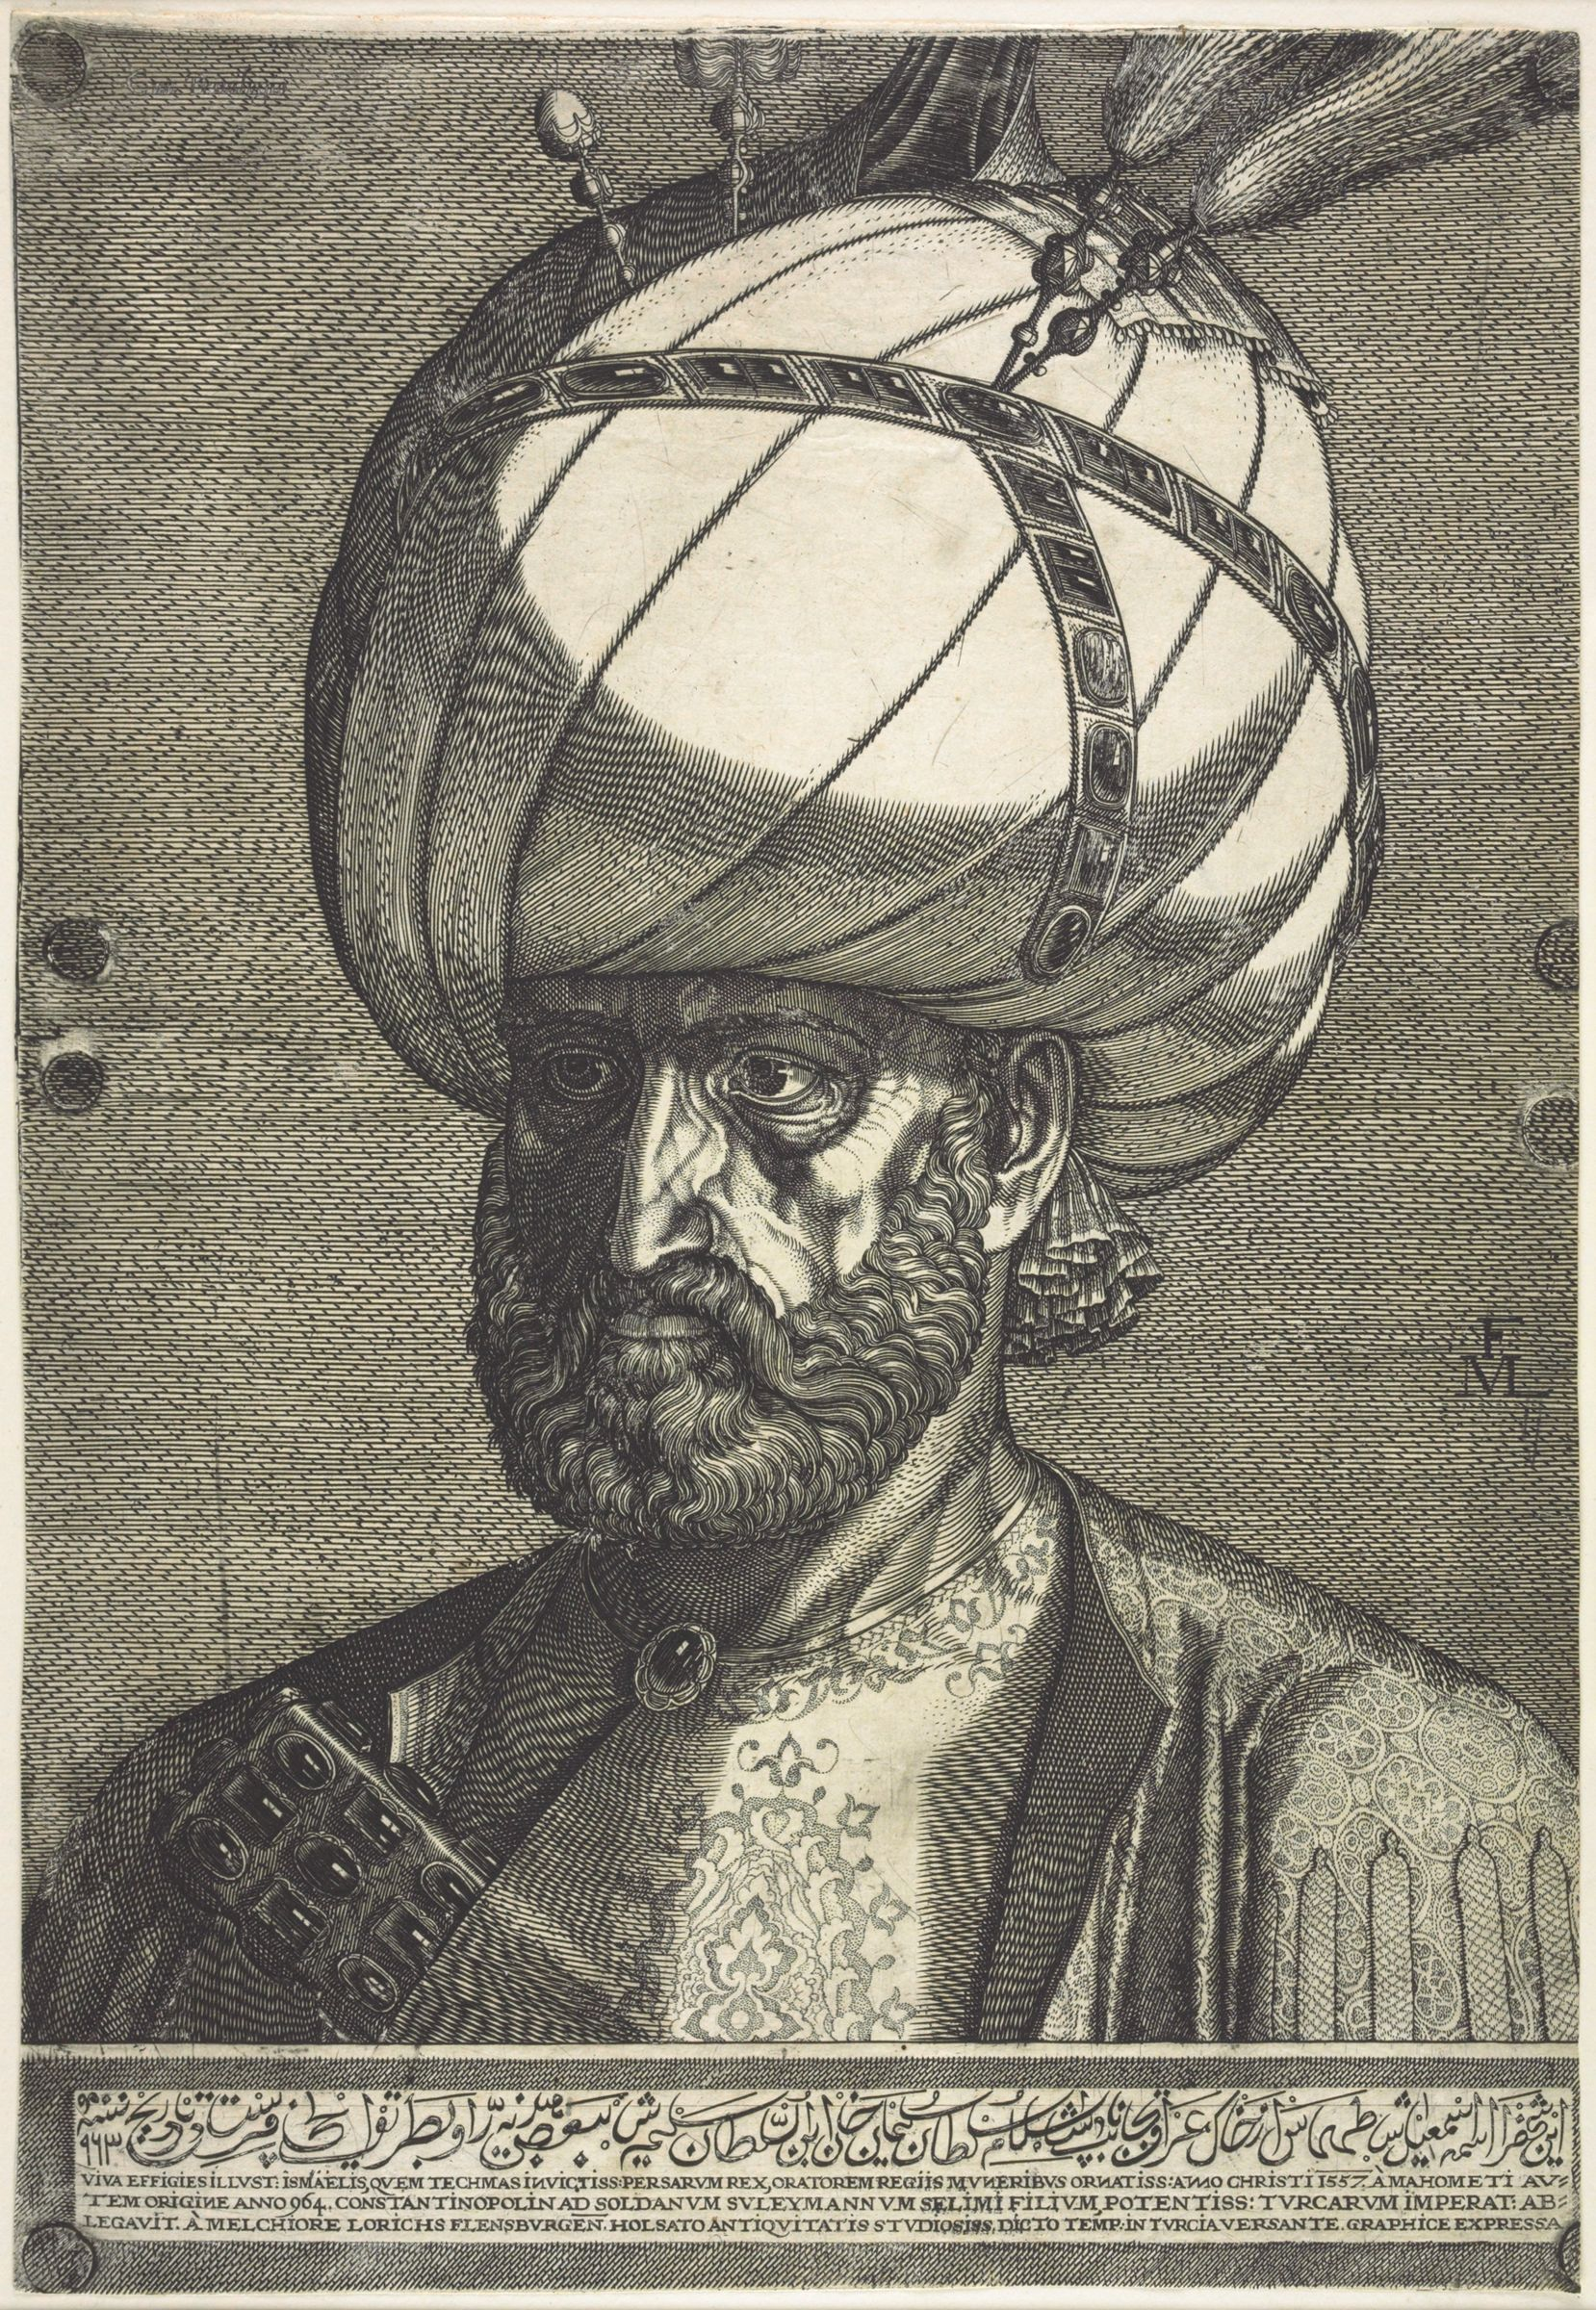 Ismael, Ambassador To Persia At The Court Of Sultan Suleiman Ii